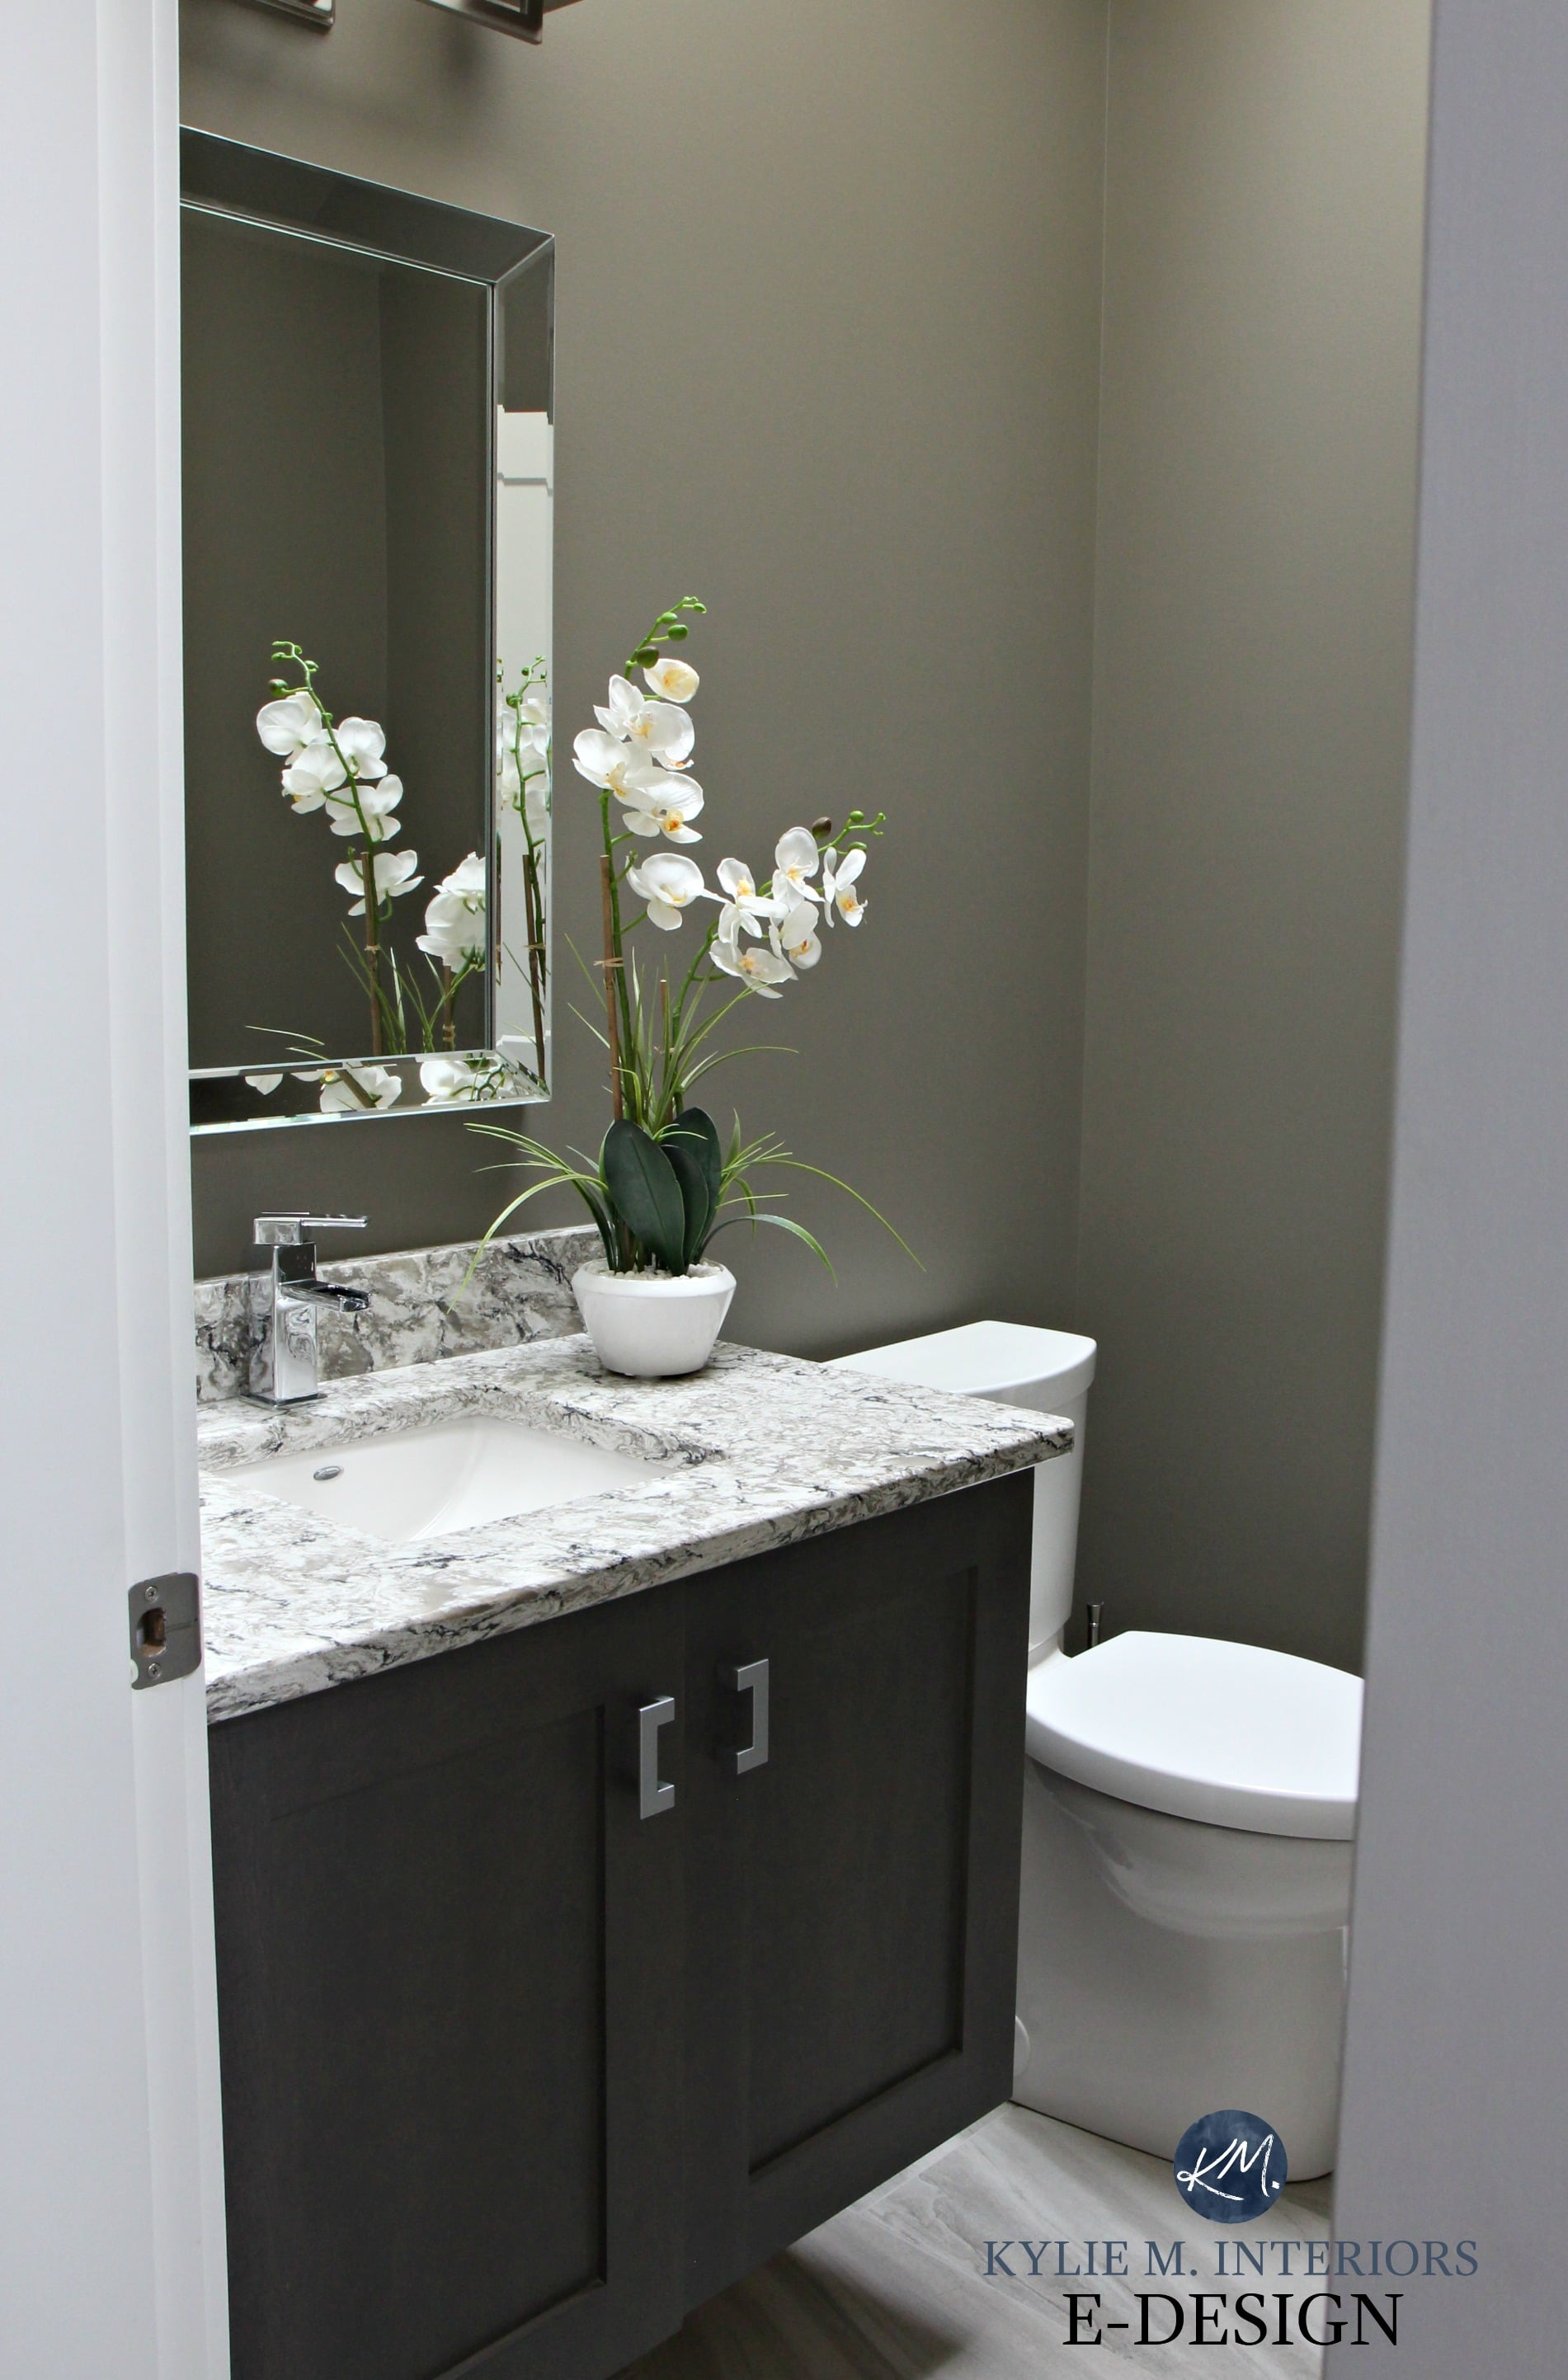 Sherwin-williams Countertop Paint Small Bathroom Powder Room In Sherwin Williams Anonymous With